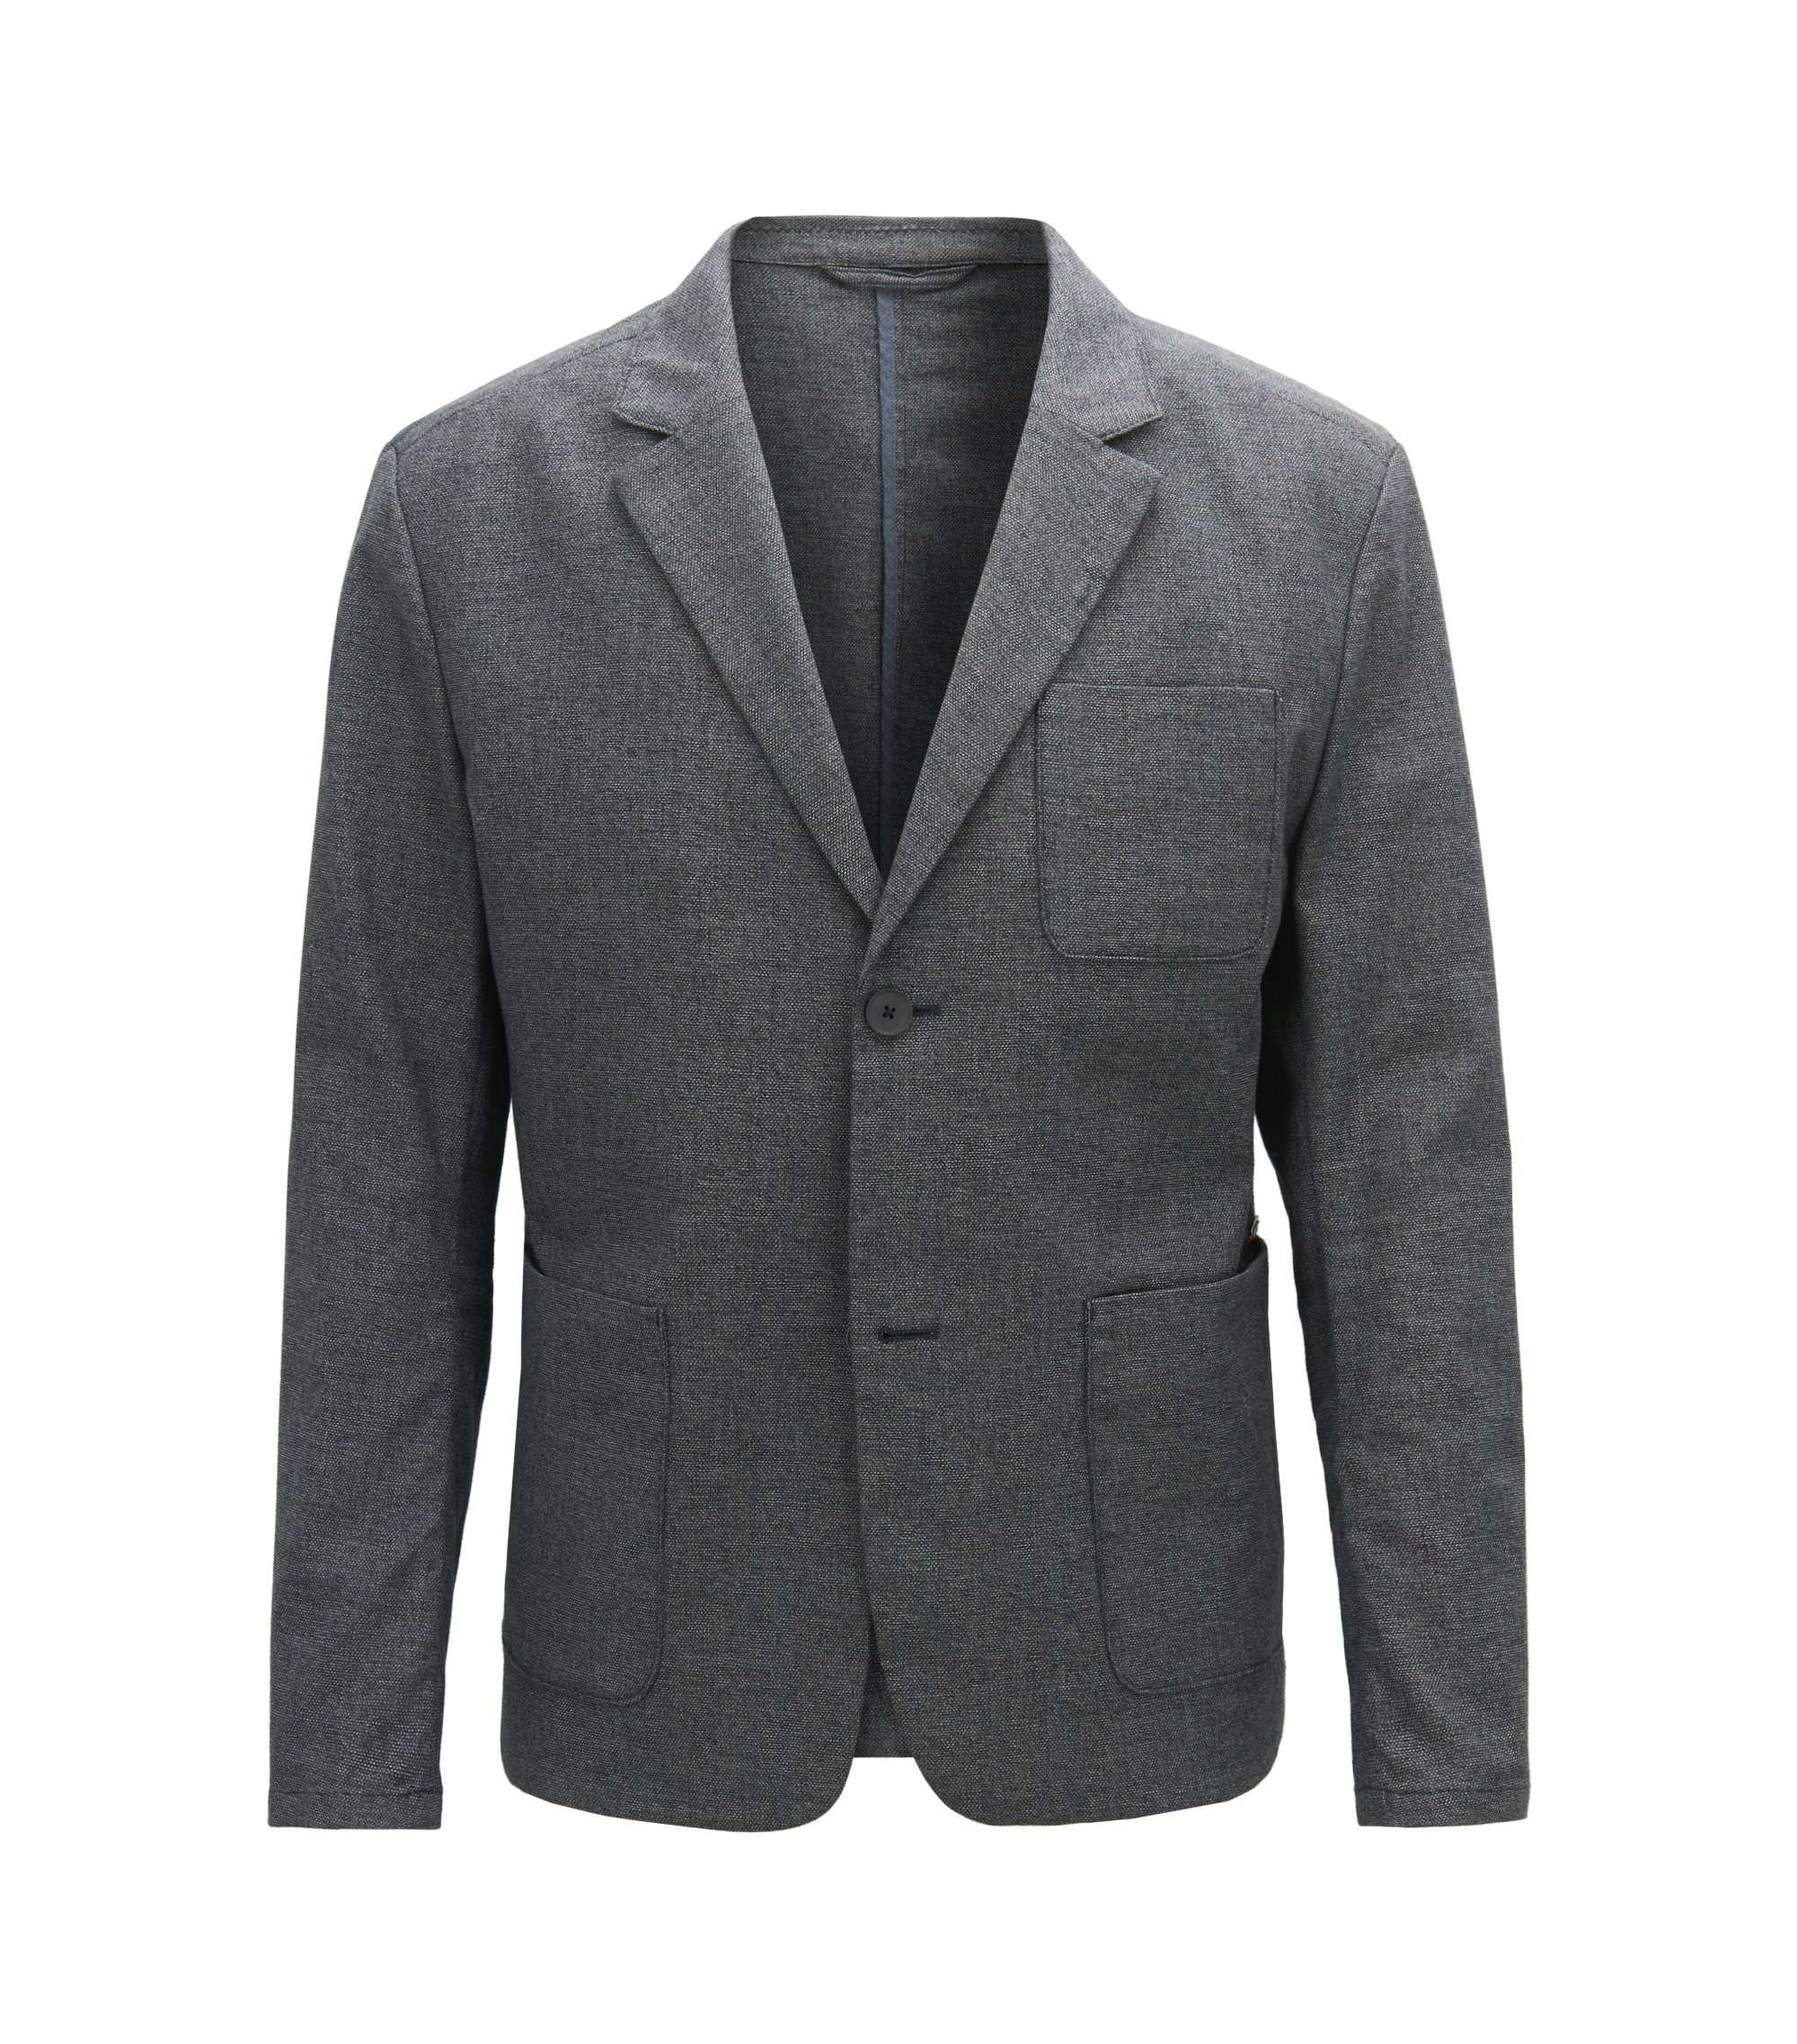 Blazer Slim Fit en coton stretch bicolore, Bleu foncé